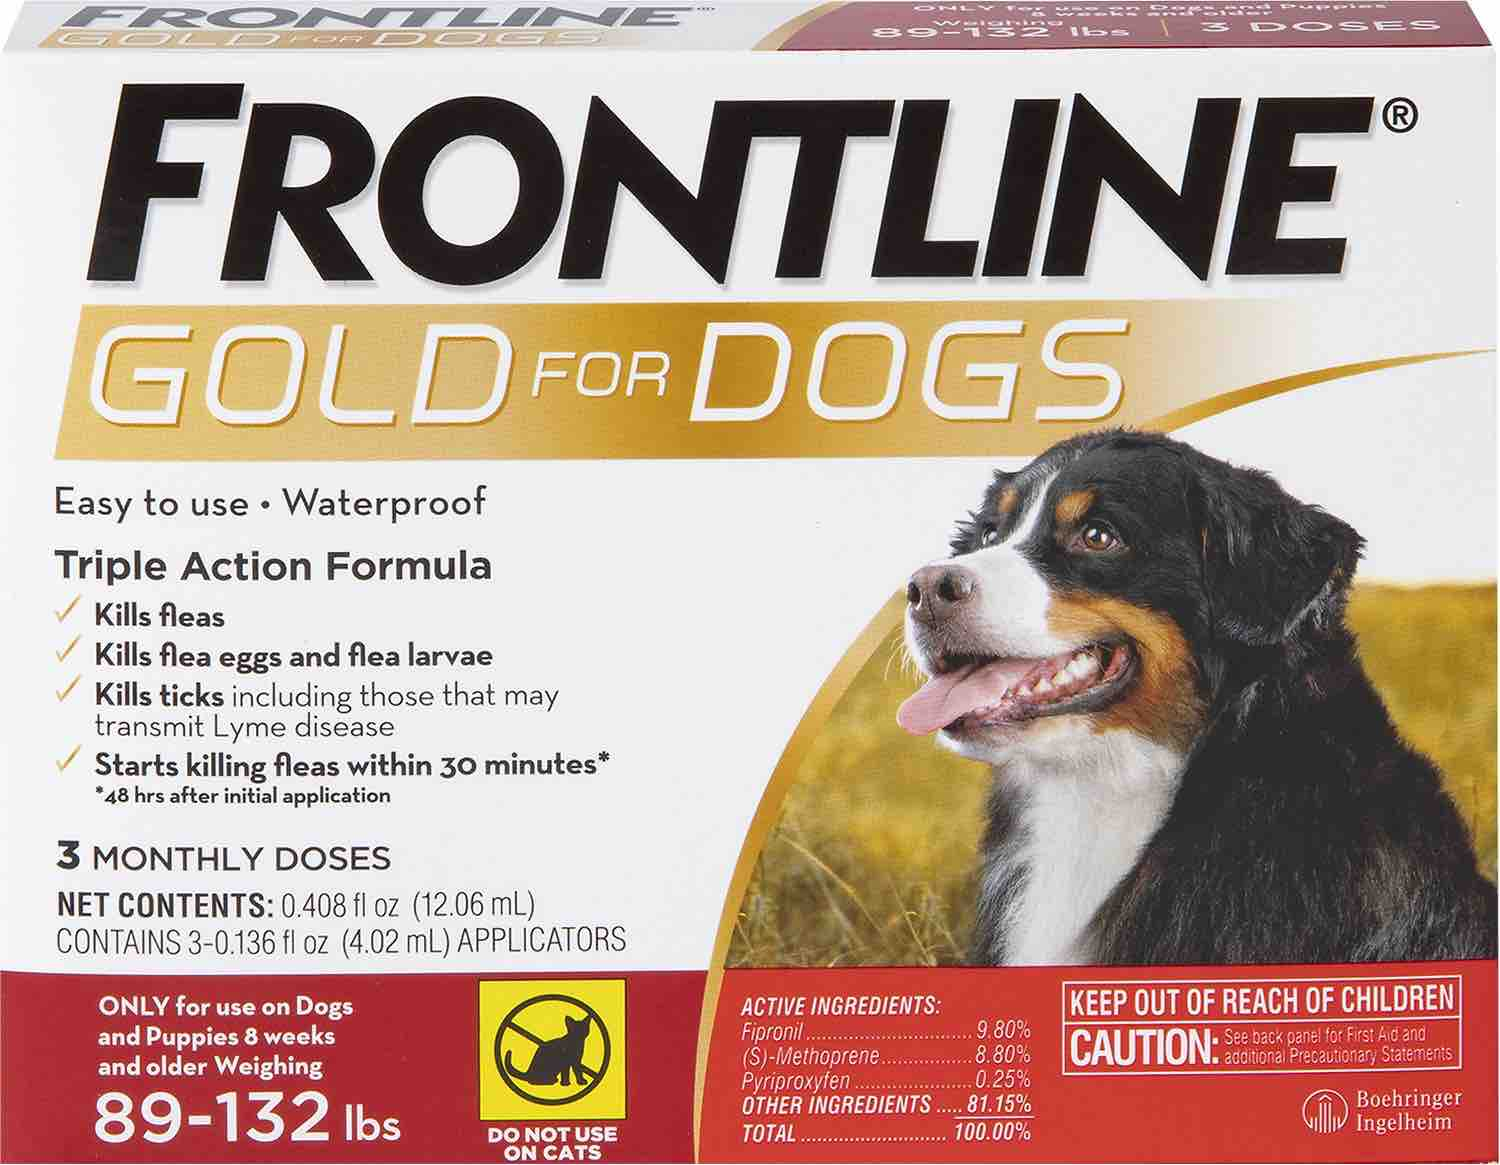 Frontline Gold for Dogs 3 doses 89-132 lbs (Red) 1